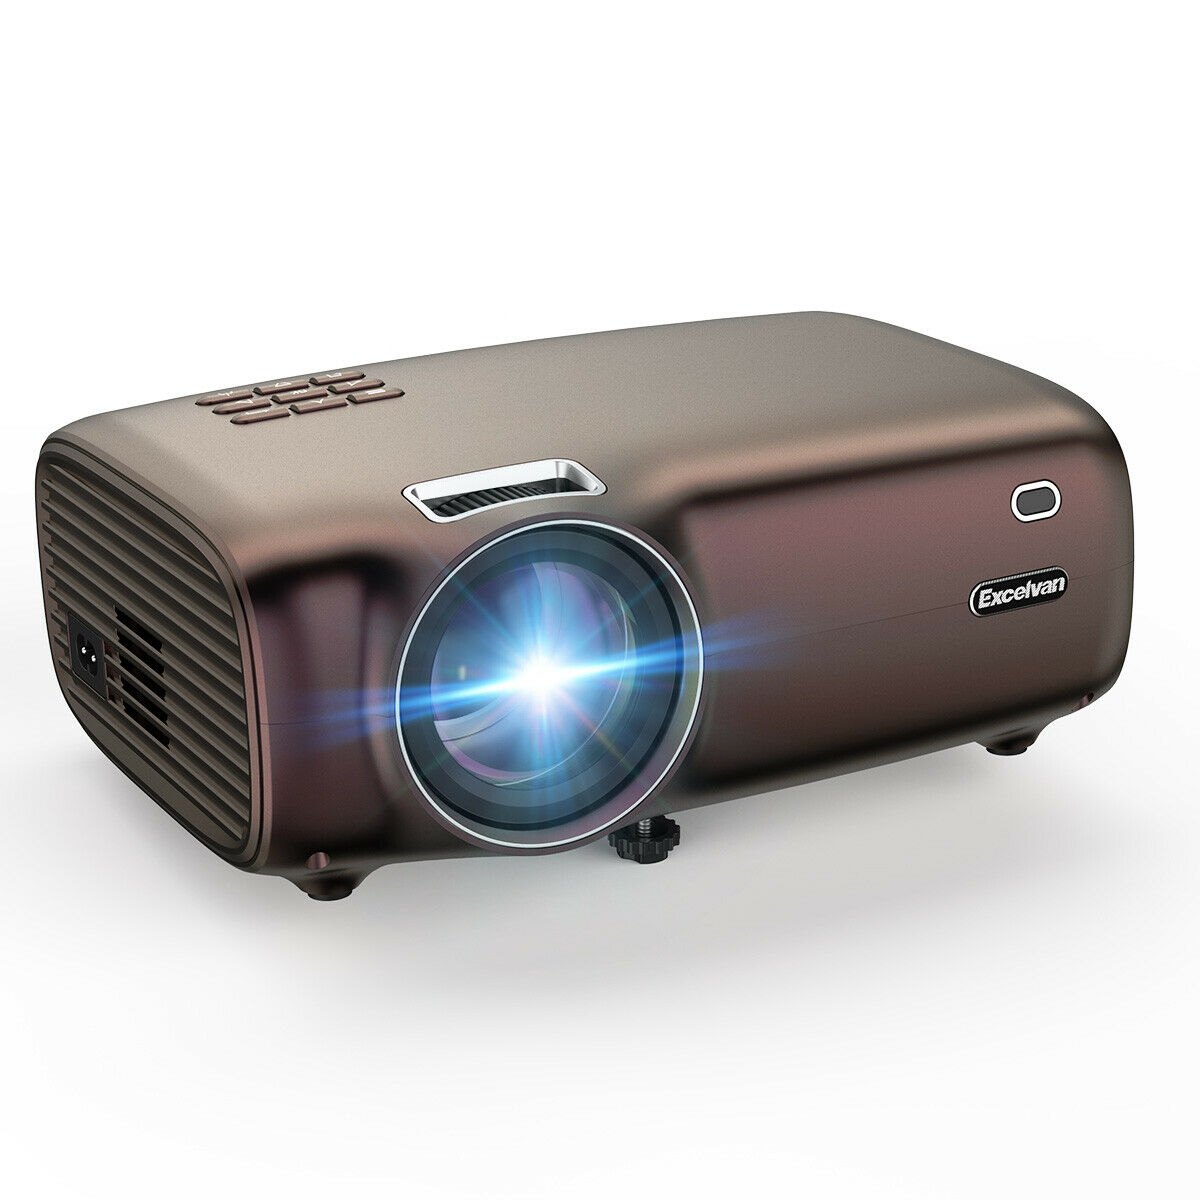 s l1600 - Nuevo Excelvan BL43 Proyector HD HDMI Led 5000 Lux 4K 3D 1080P 4:3/16:9